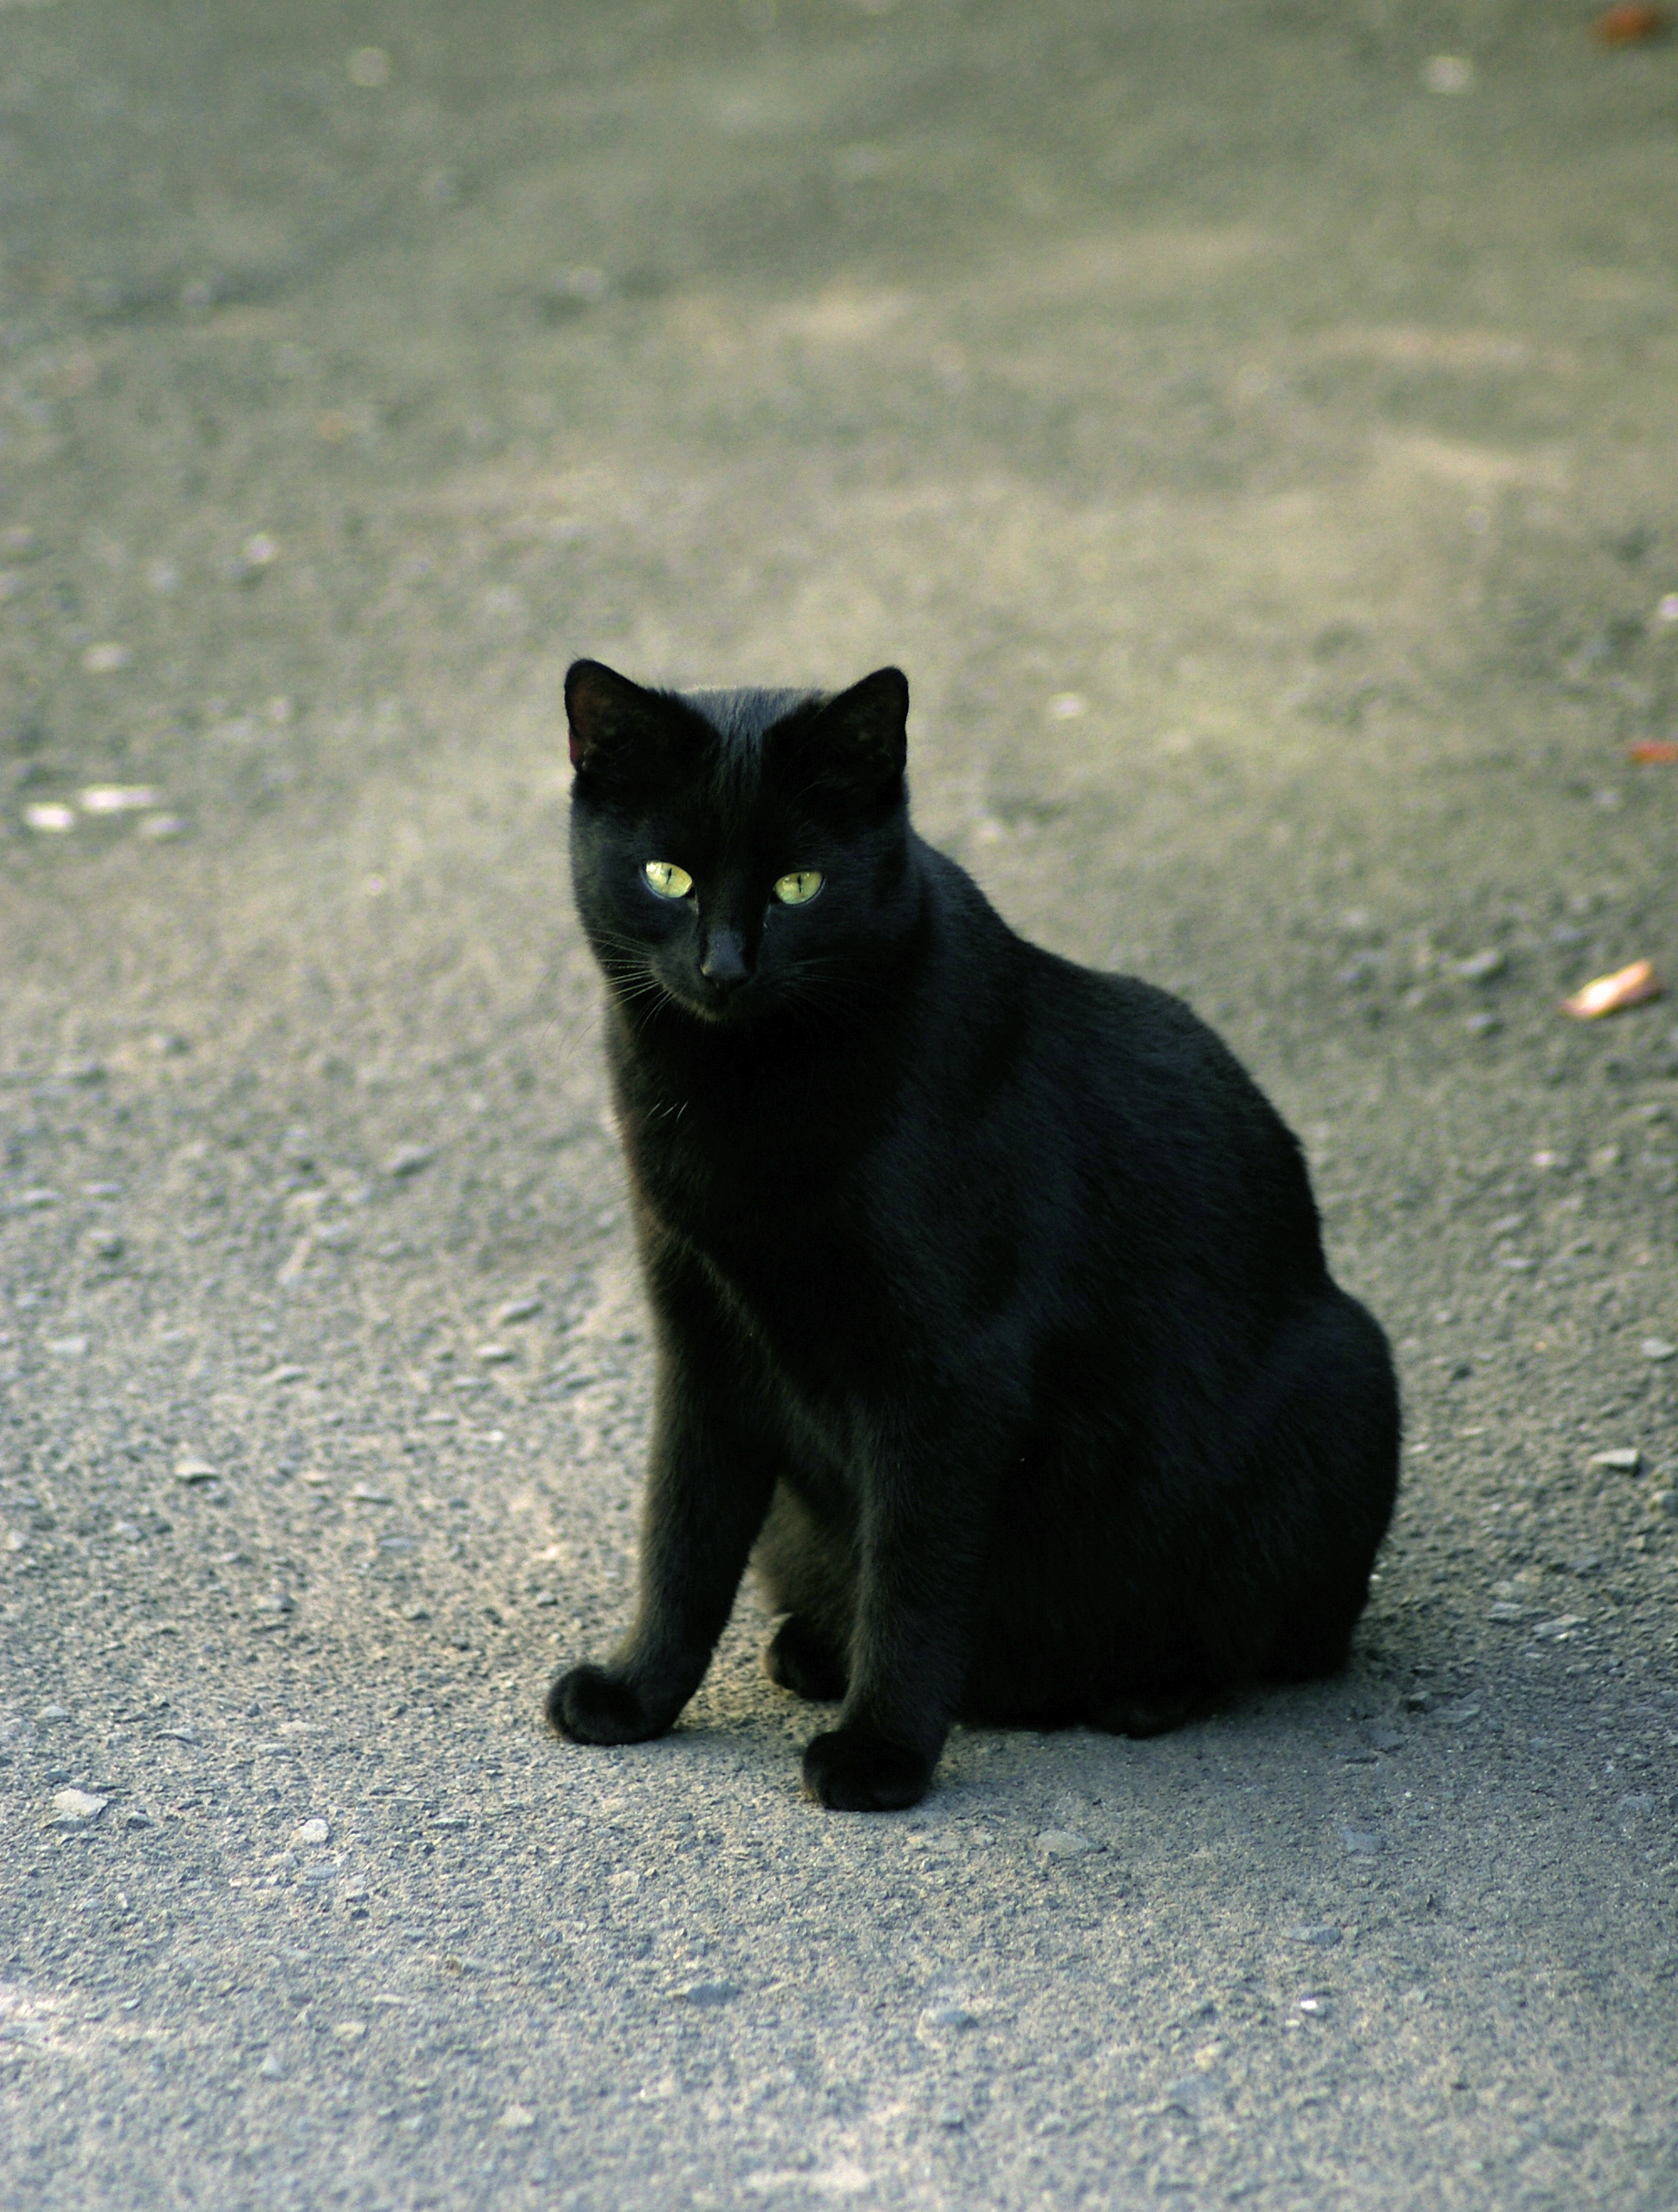 The Black Cat Militaria